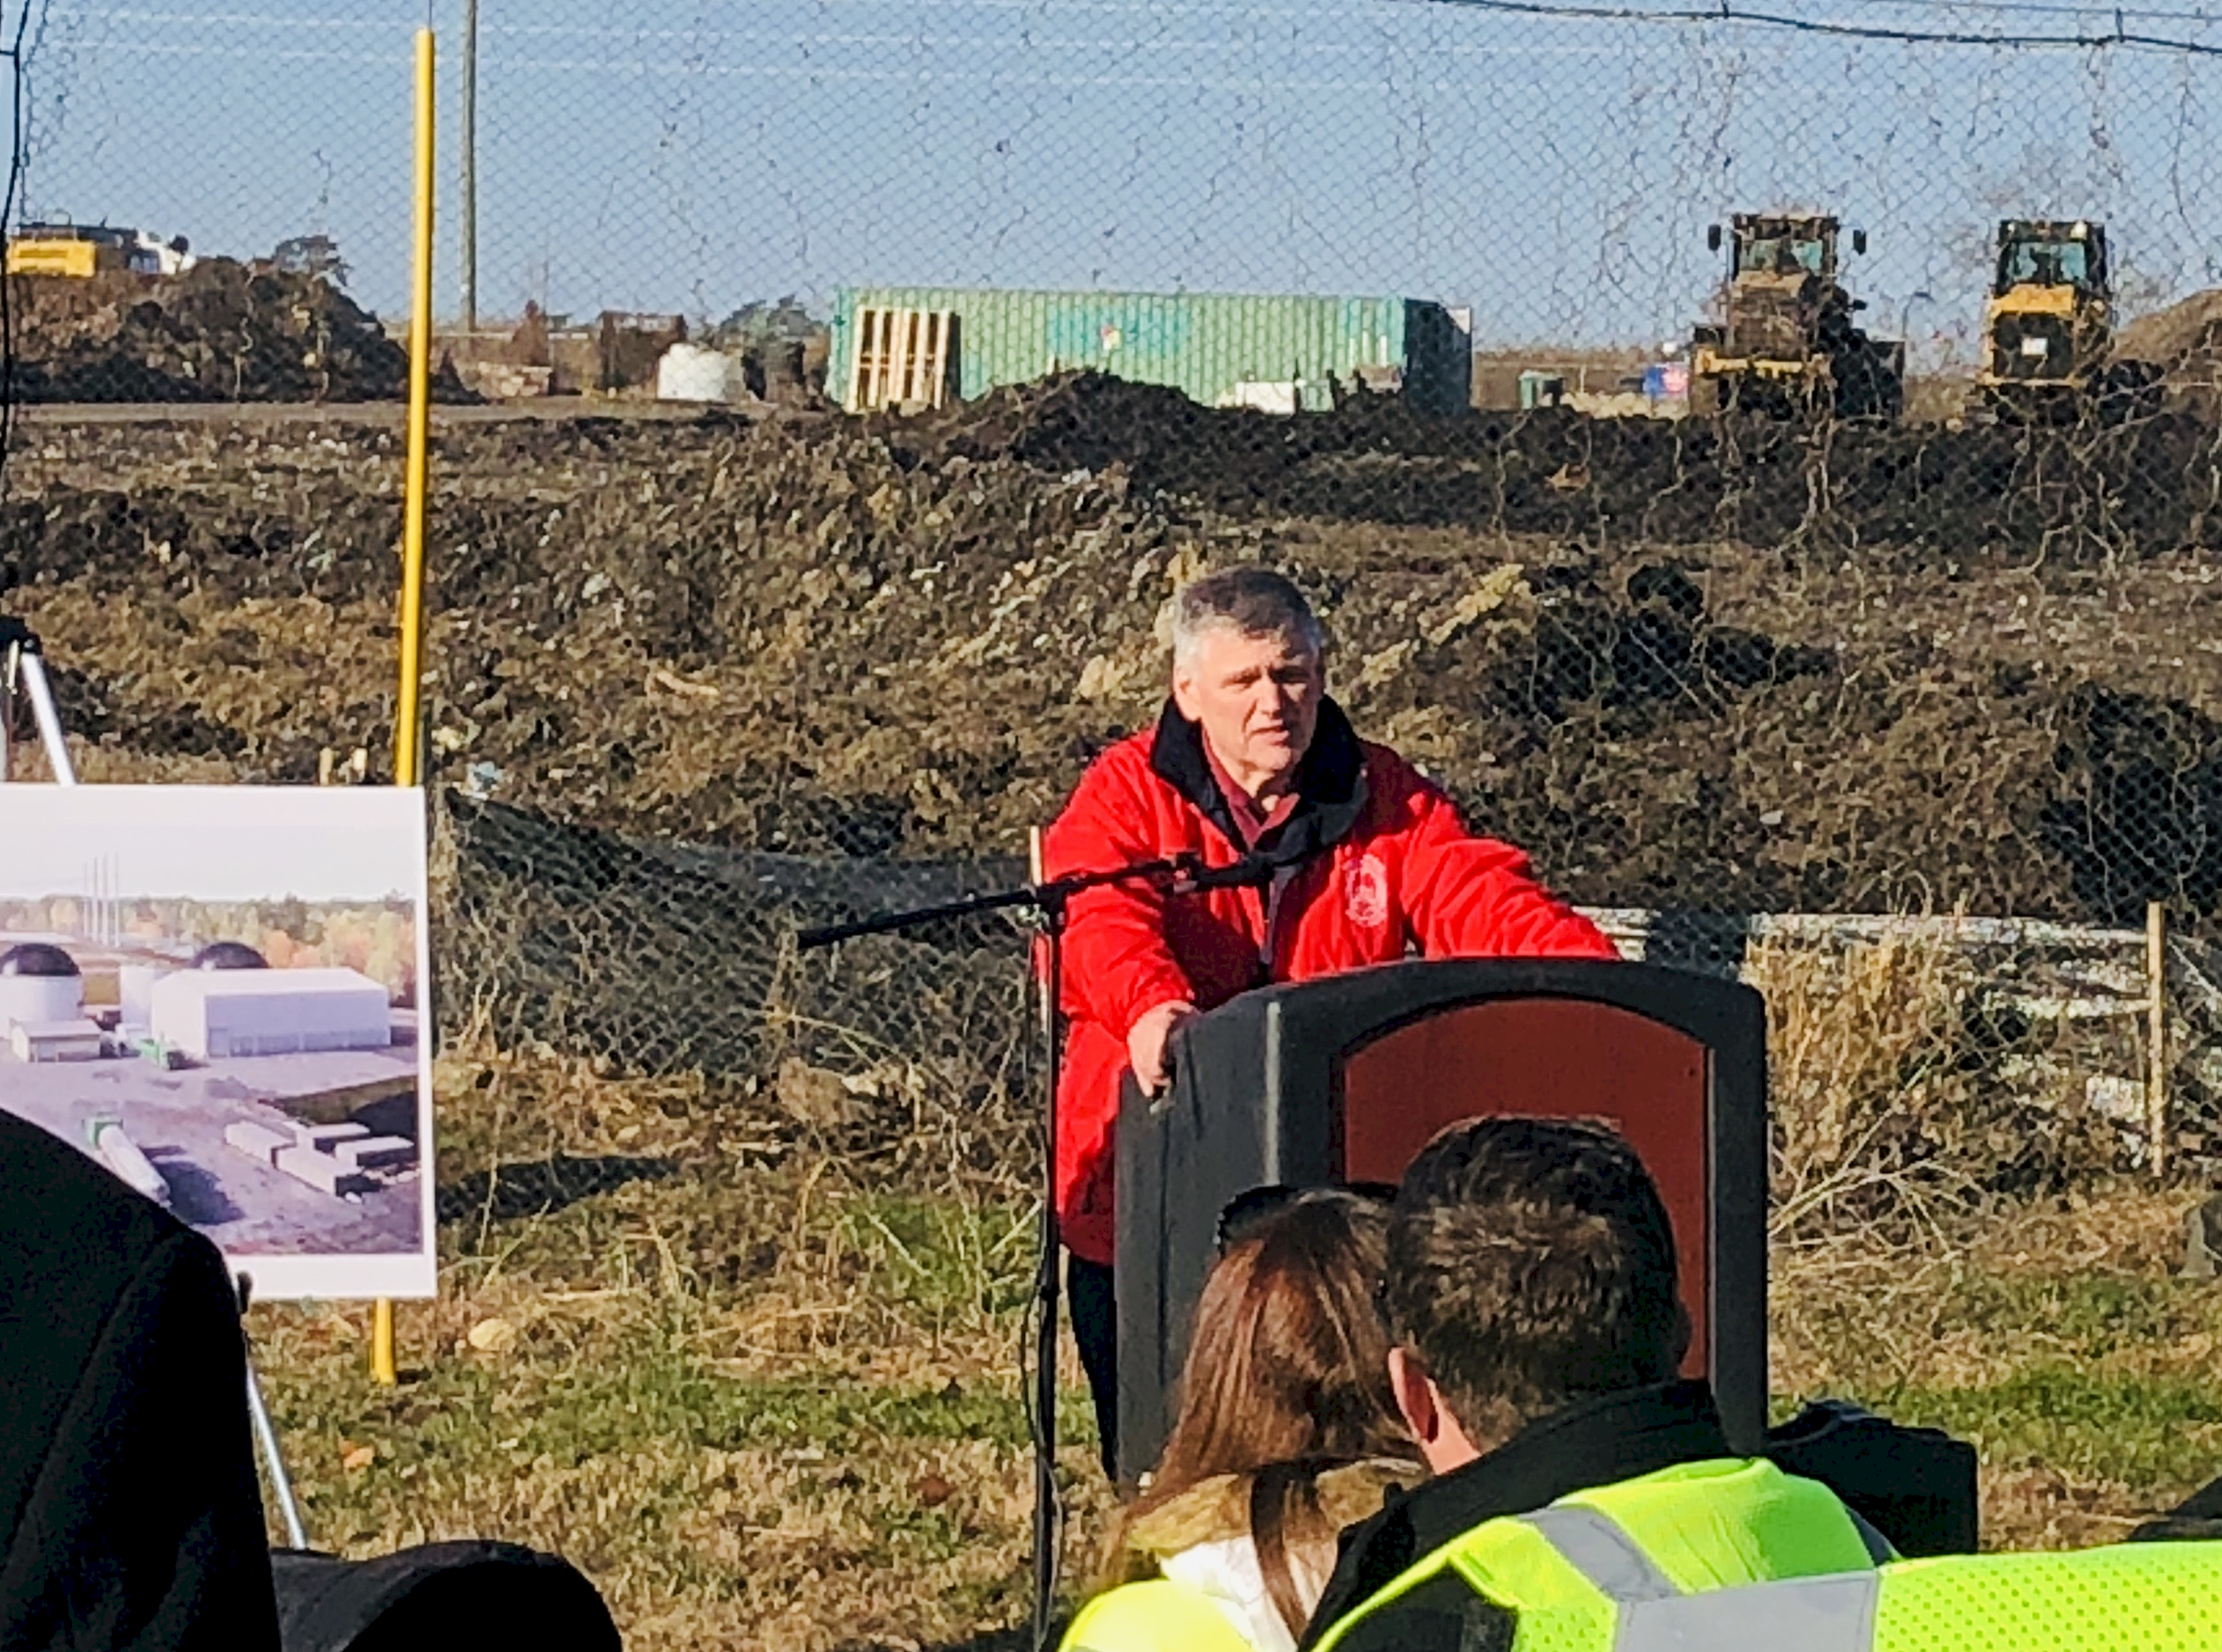 Thomas Smith, Prince William County Solid Waste Division Chief, addresses attendees of the groundbreaking ceremony.